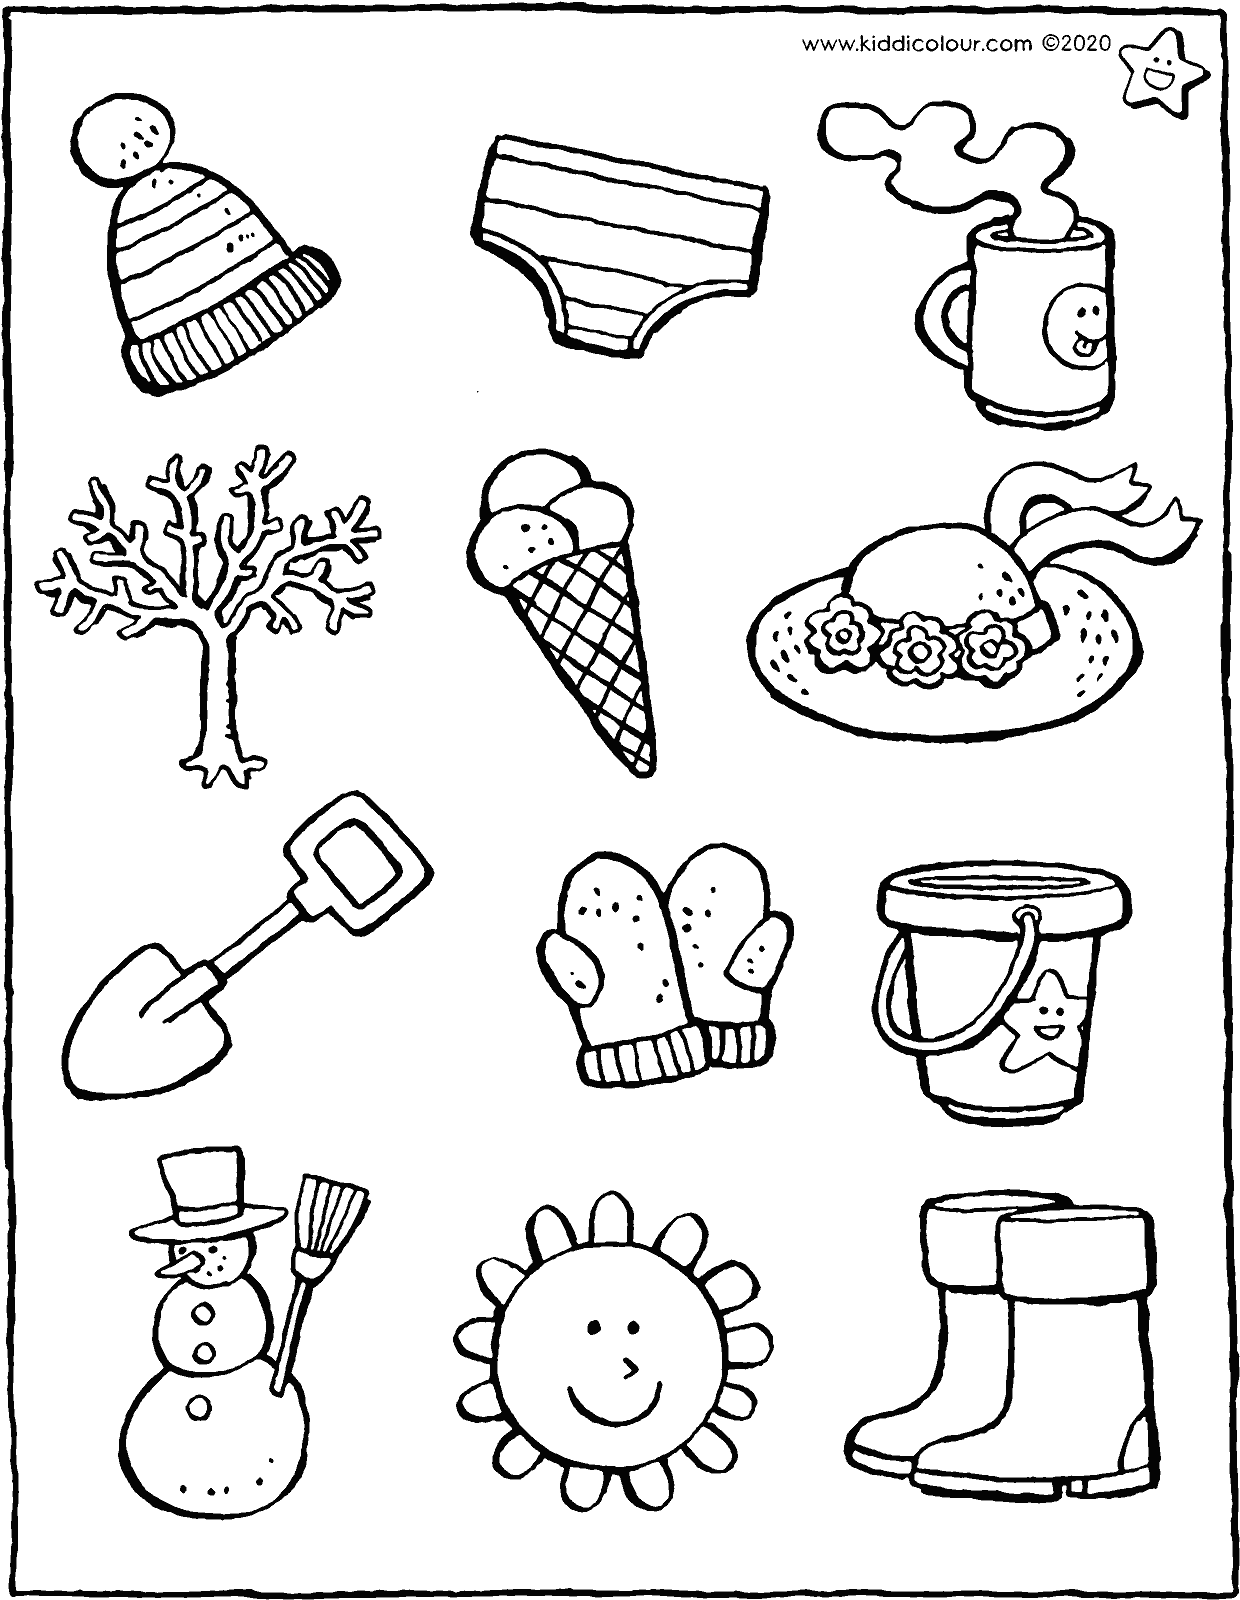 which objects relate to winter colouring page drawing picture 01V